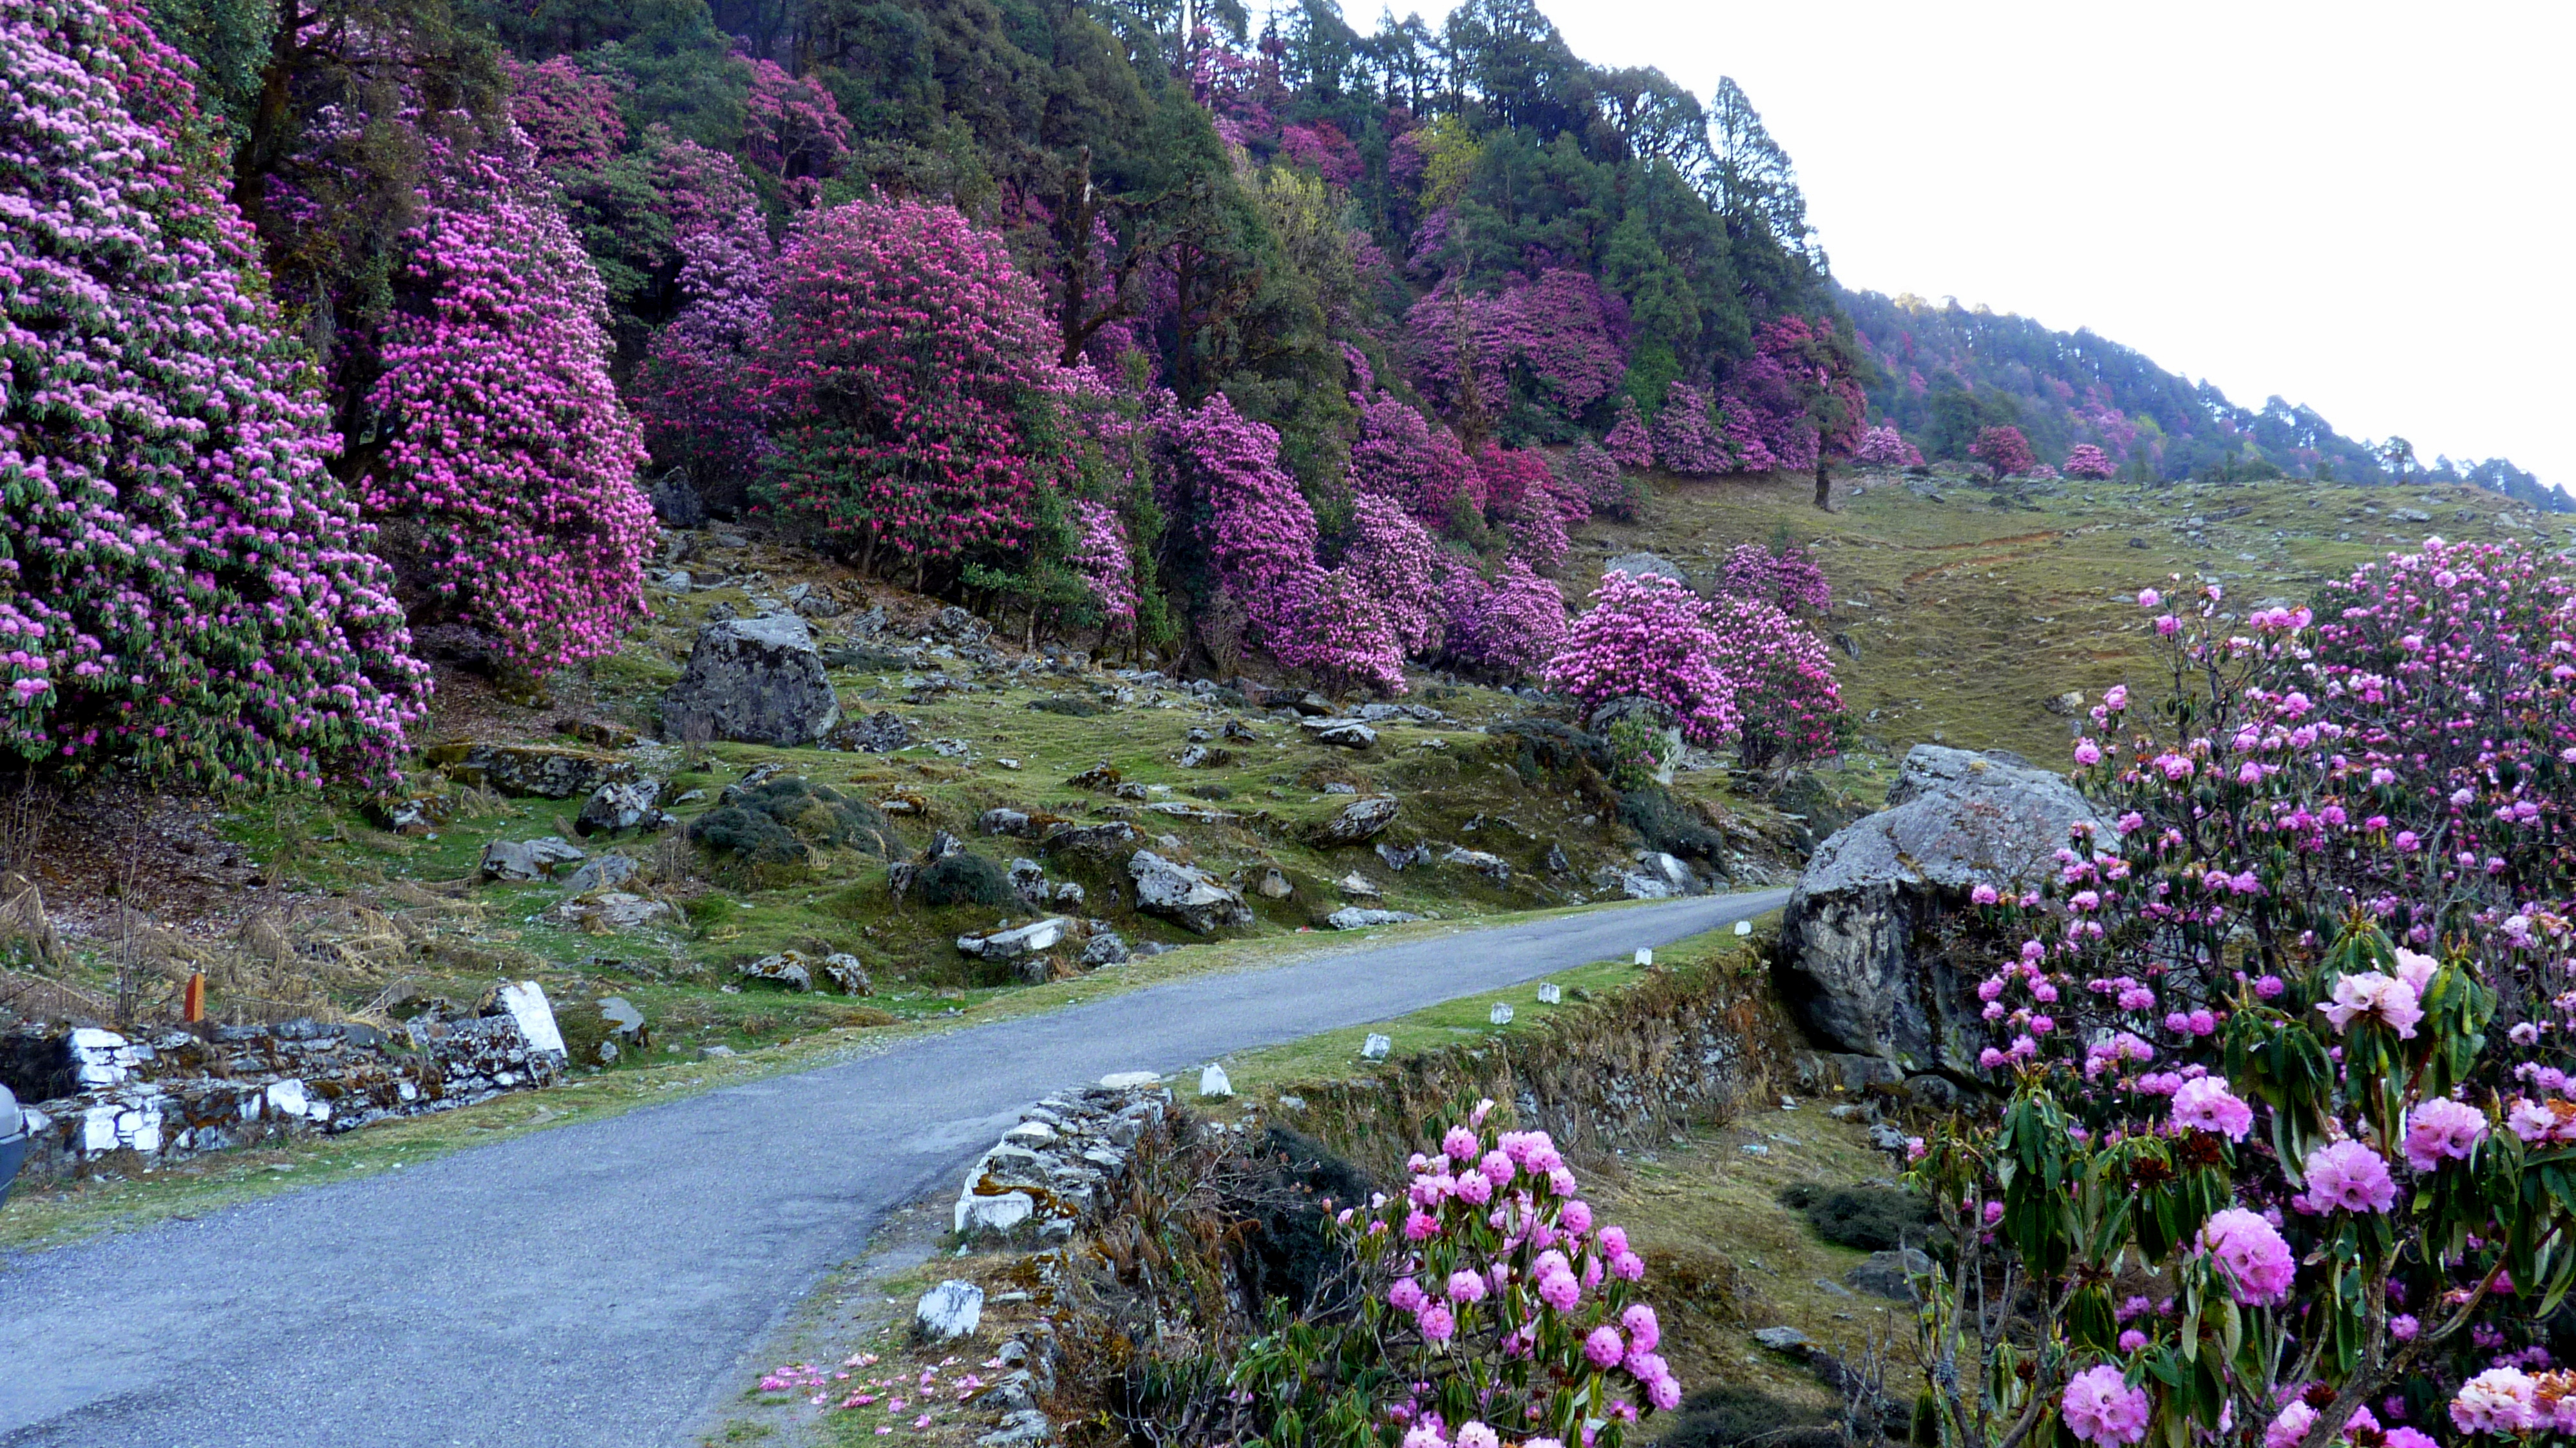 On the way to Chopta pink flowers one of the unexplored places in India